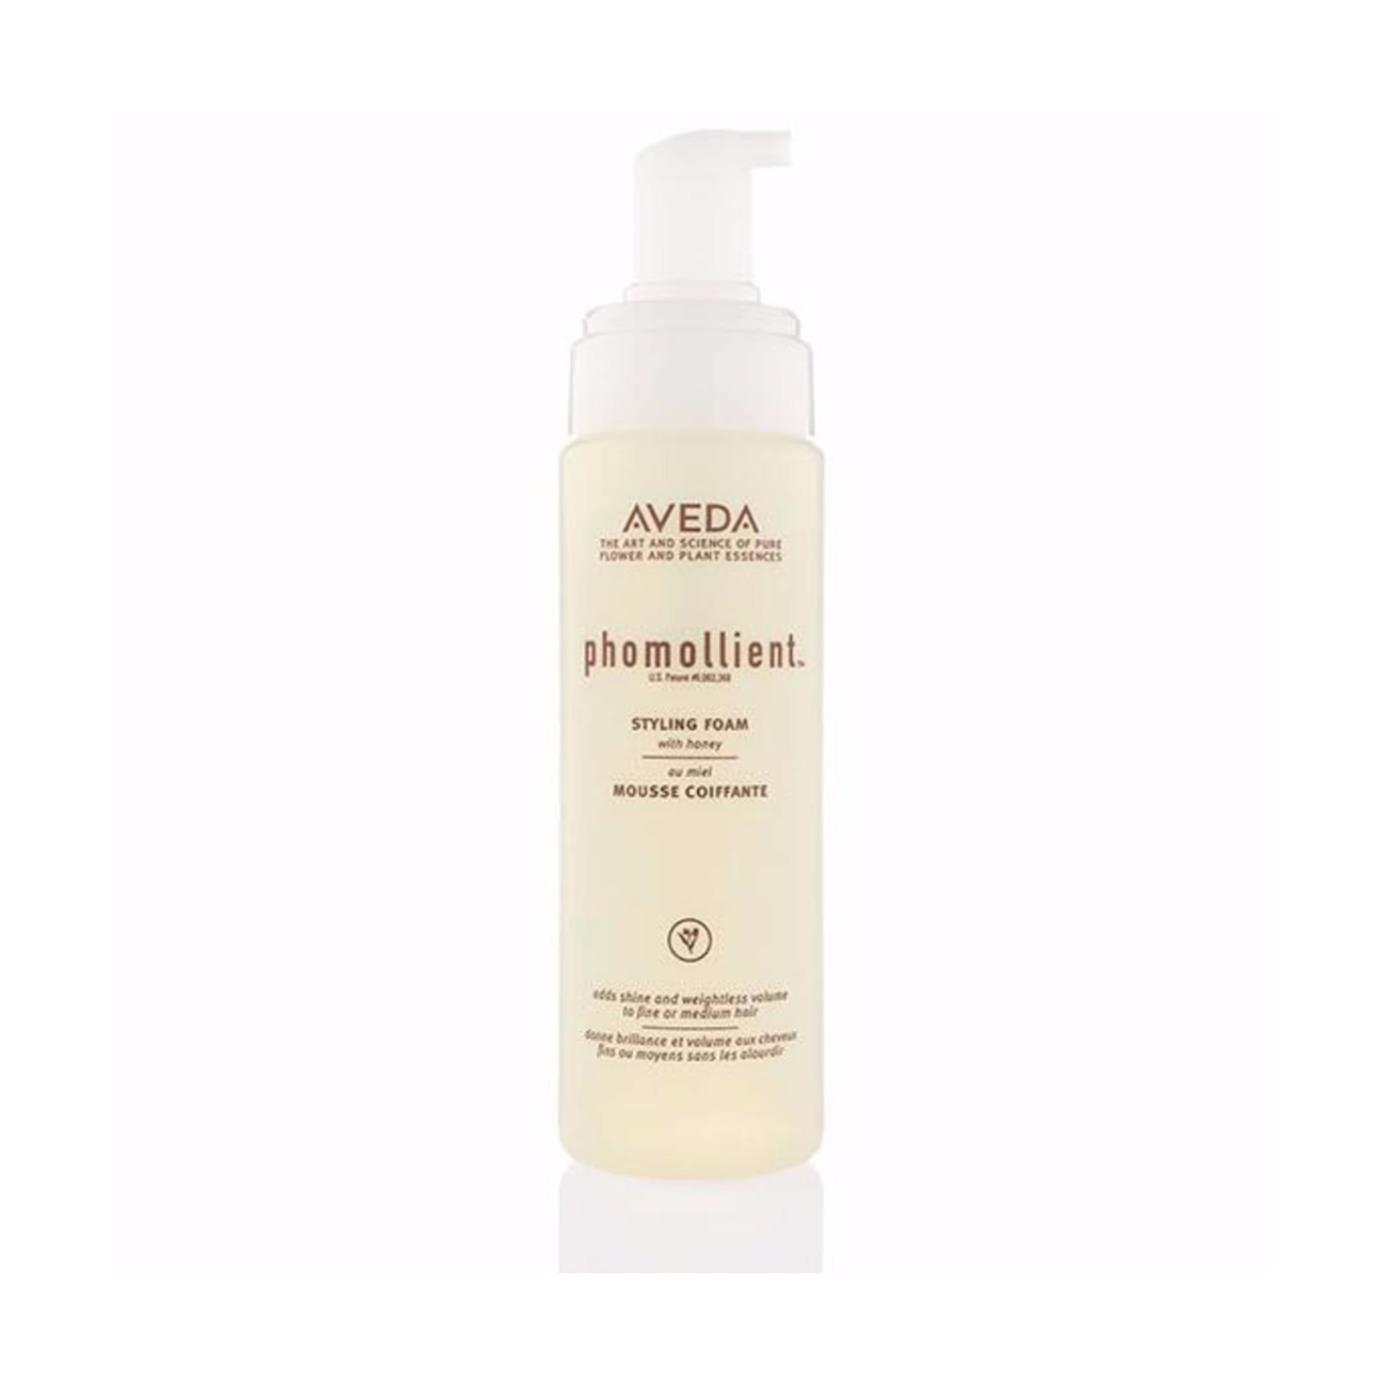 Aveda Phomollient $31.00 (200ml)   Our formula creates weightless body and volume on fine to medium hair. Air-infused technology transforms a liquid into a foam without hydrocarbon propellants.  Aveda's own pure-fume aroma with certified organic peppermint, ylang ylang, bergamot and other pure flower and plant essences.   (purchase in store only)